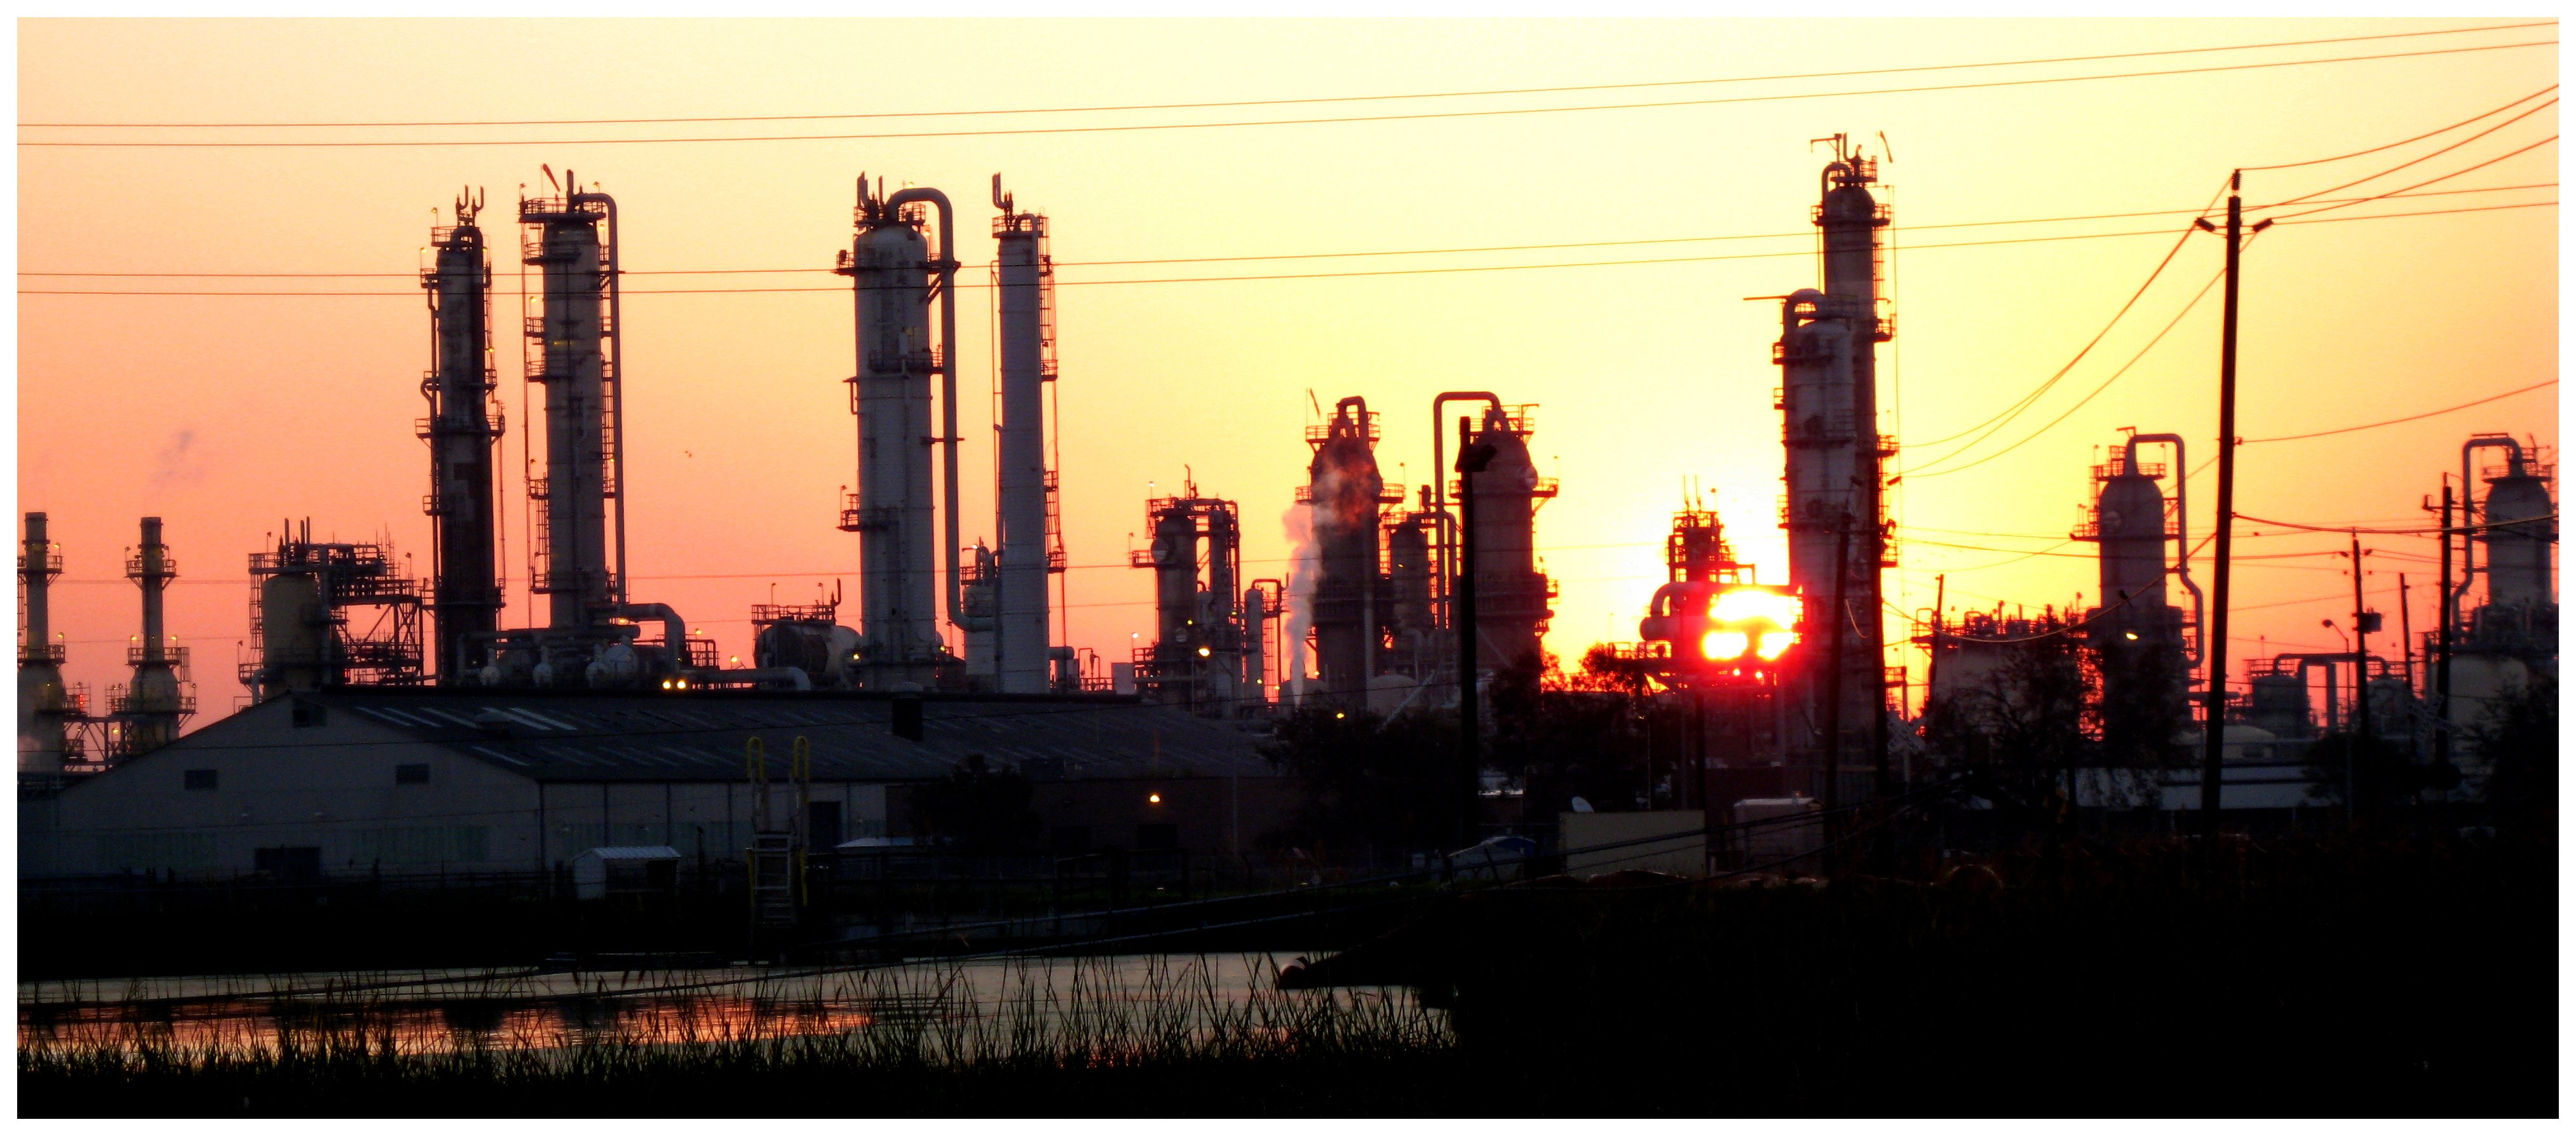 Texas Petrochemical Plant Construction to Create 10,000 Jobs